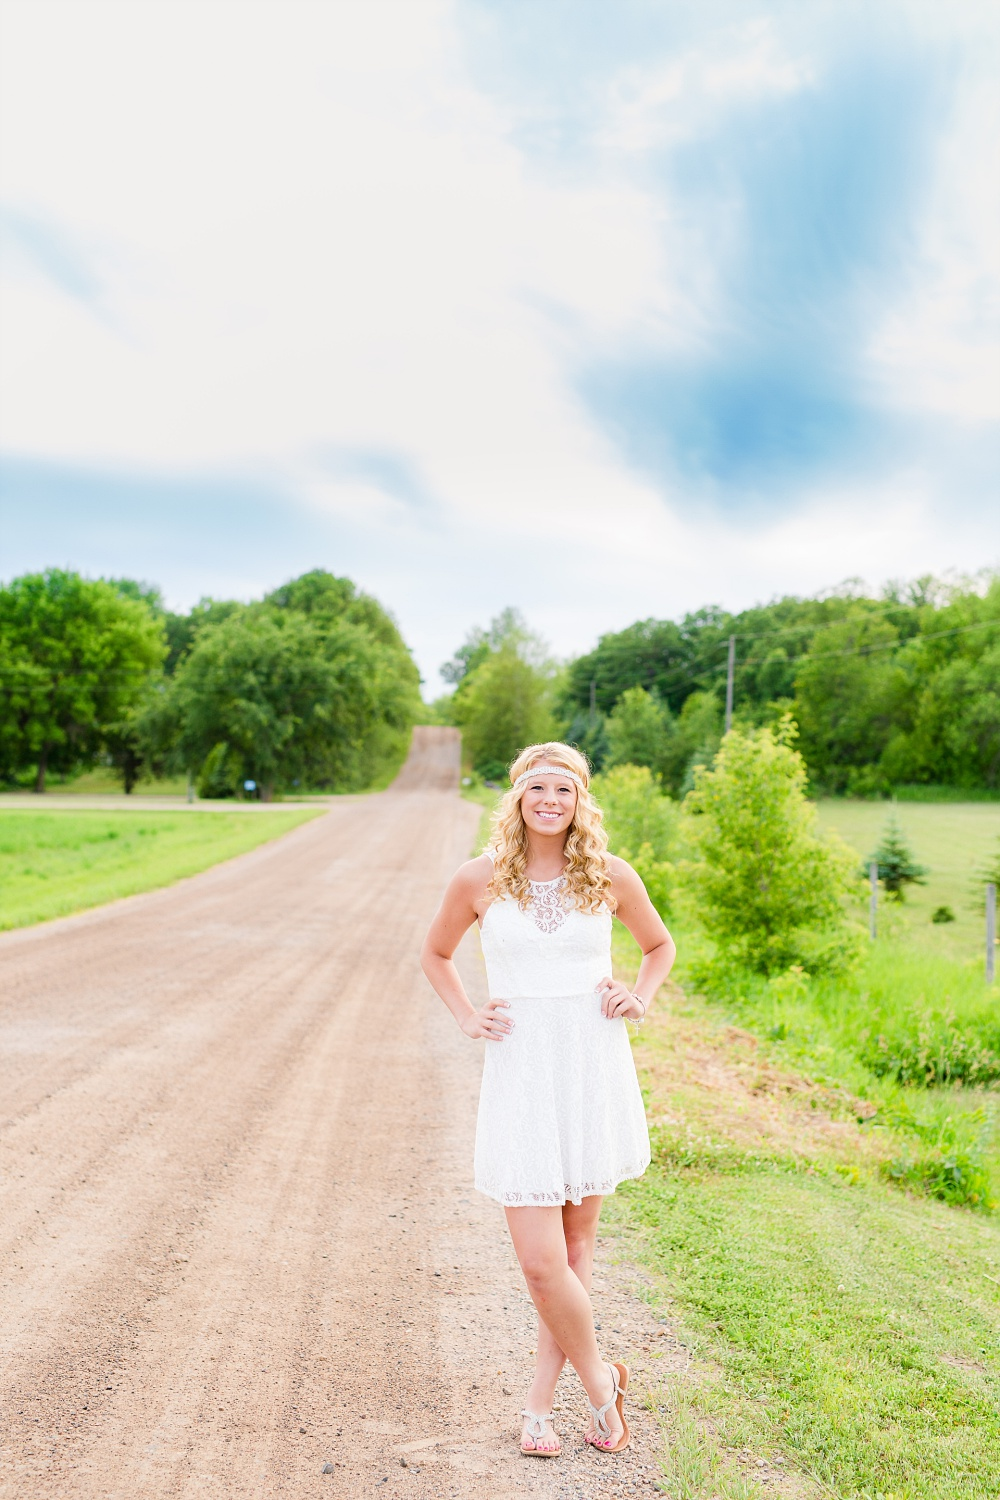 Outdoor, country and basketball styled senior pictures near Audubon, MN | Amber Langerud Photography | wearing white dress on gravel road